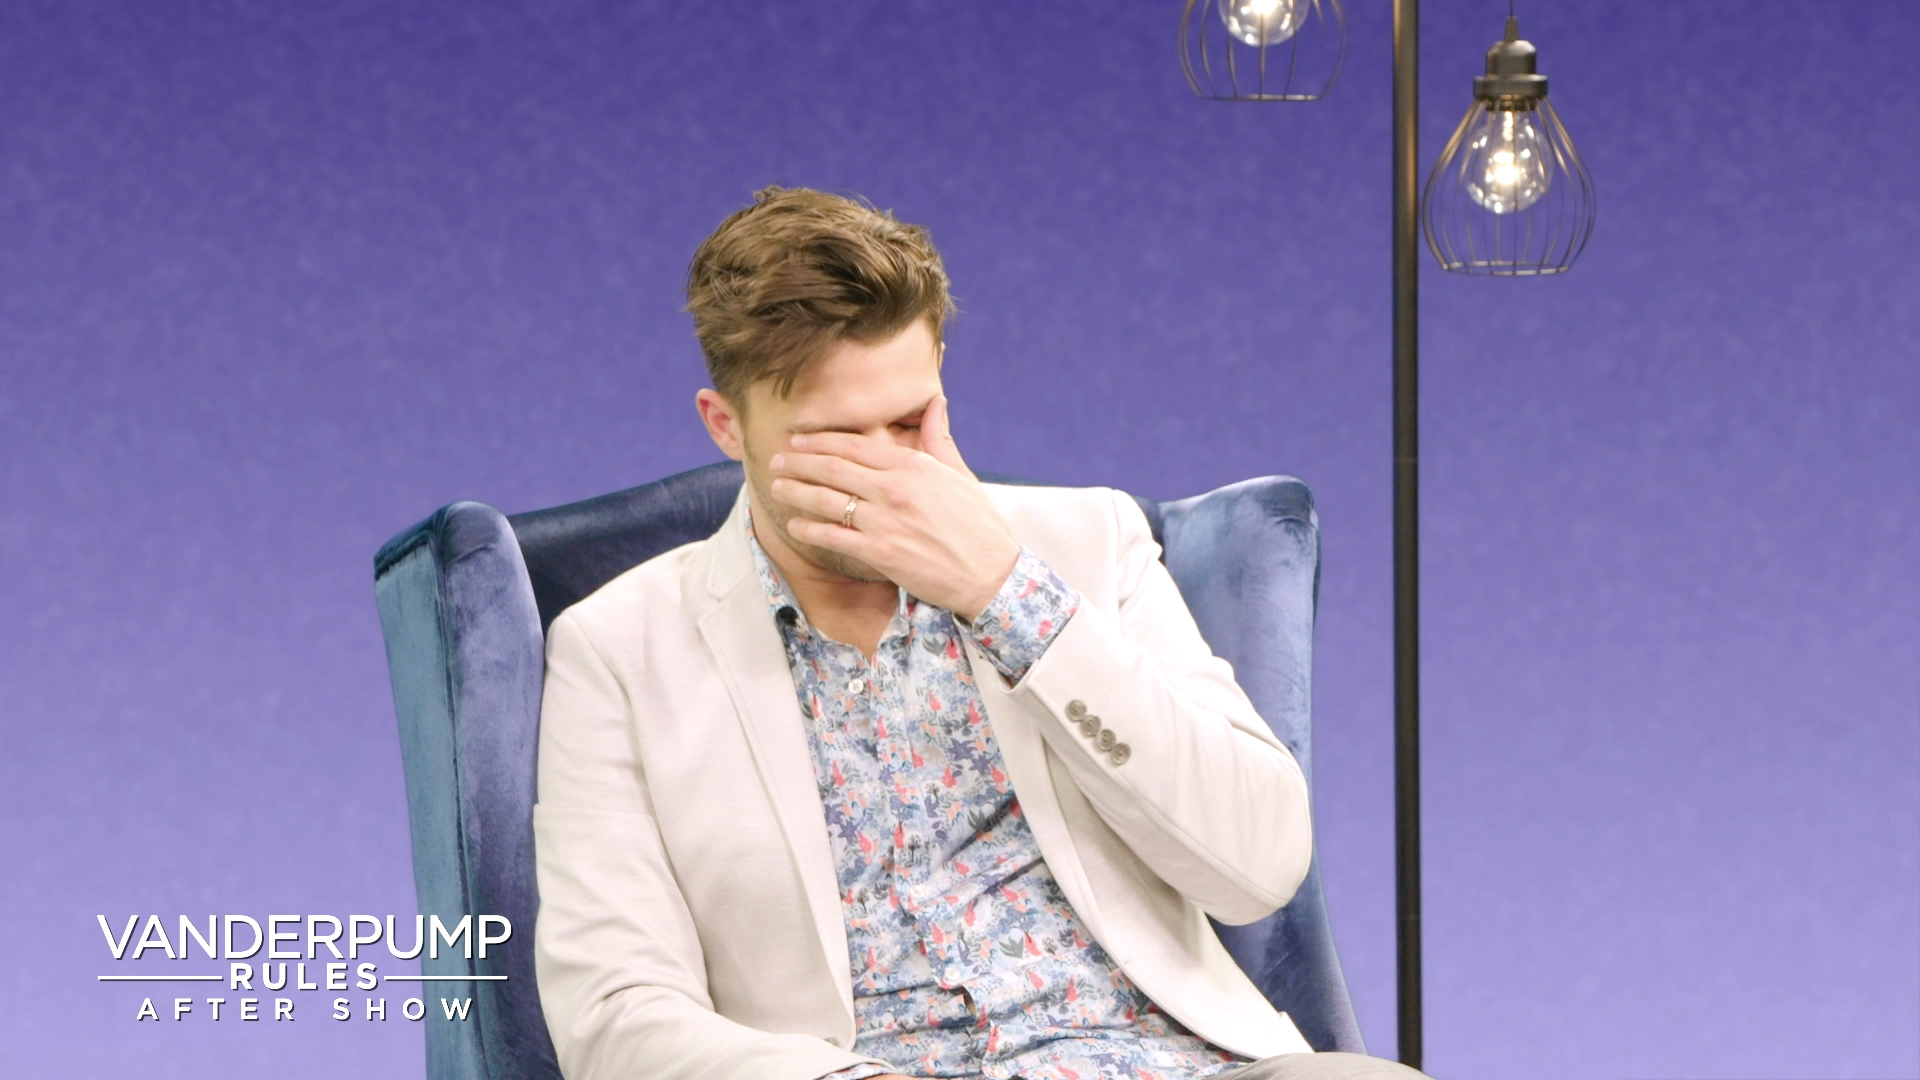 Tom Schwartz Says Lisa Vanderpump's Bra Smells Like Diamonds and Rose